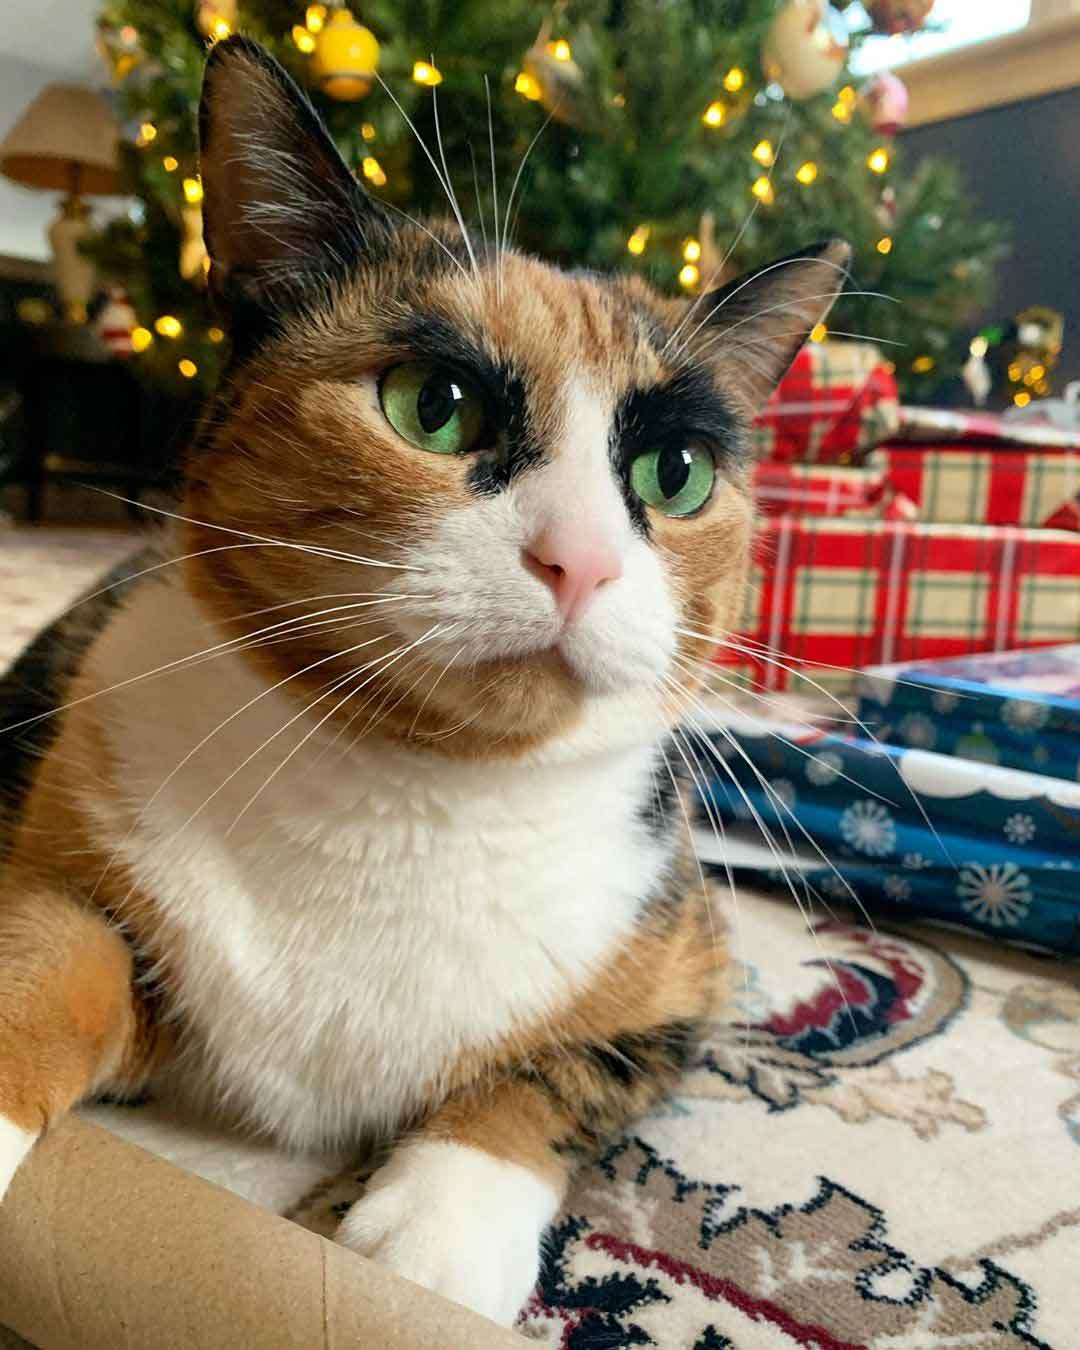 Lilly cat rare eyebrows judging calico Cara Delevingne Eugene Levy